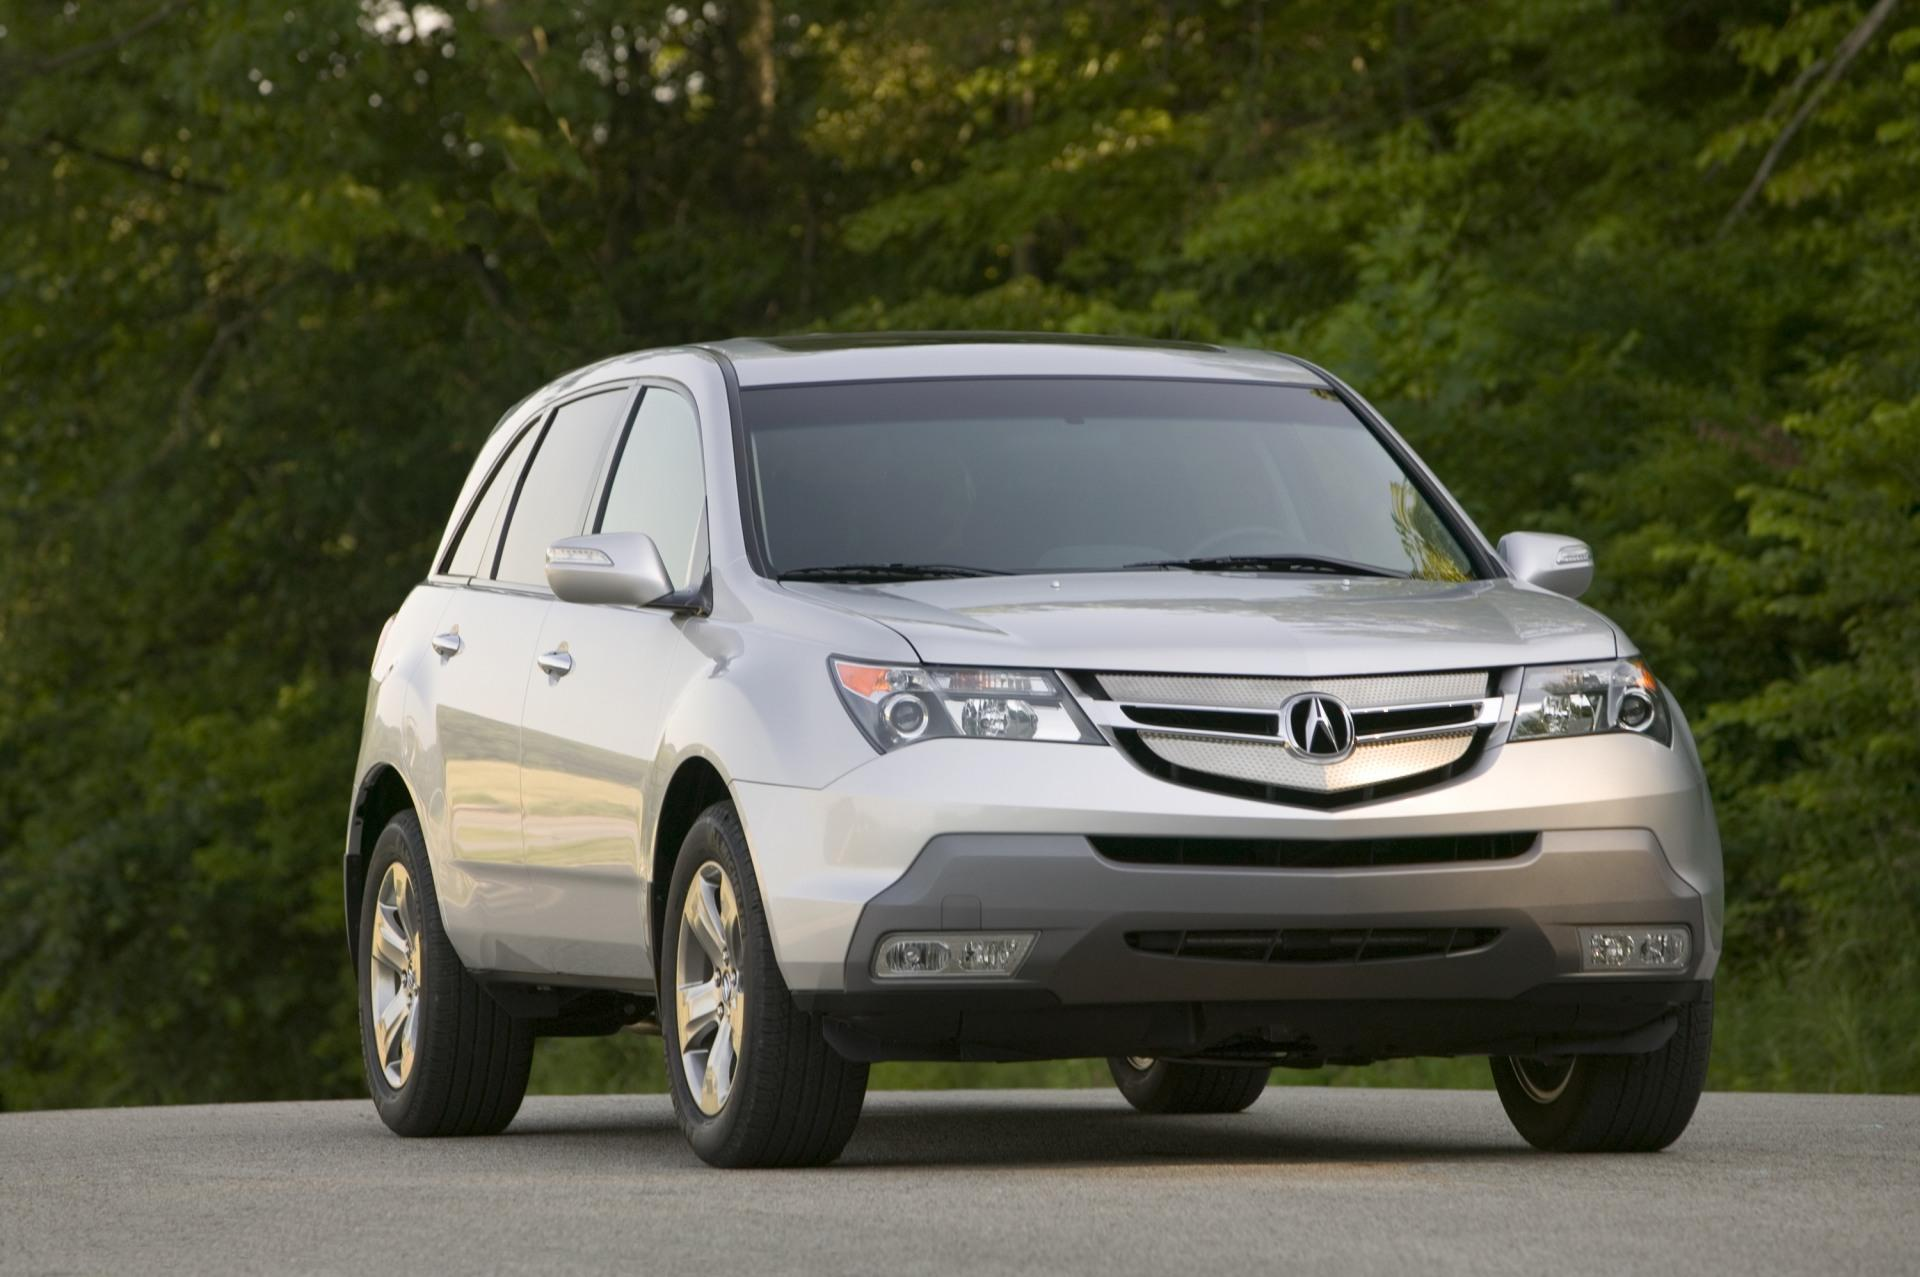 2009 Acura MDX News and Information - conceptcarz.com